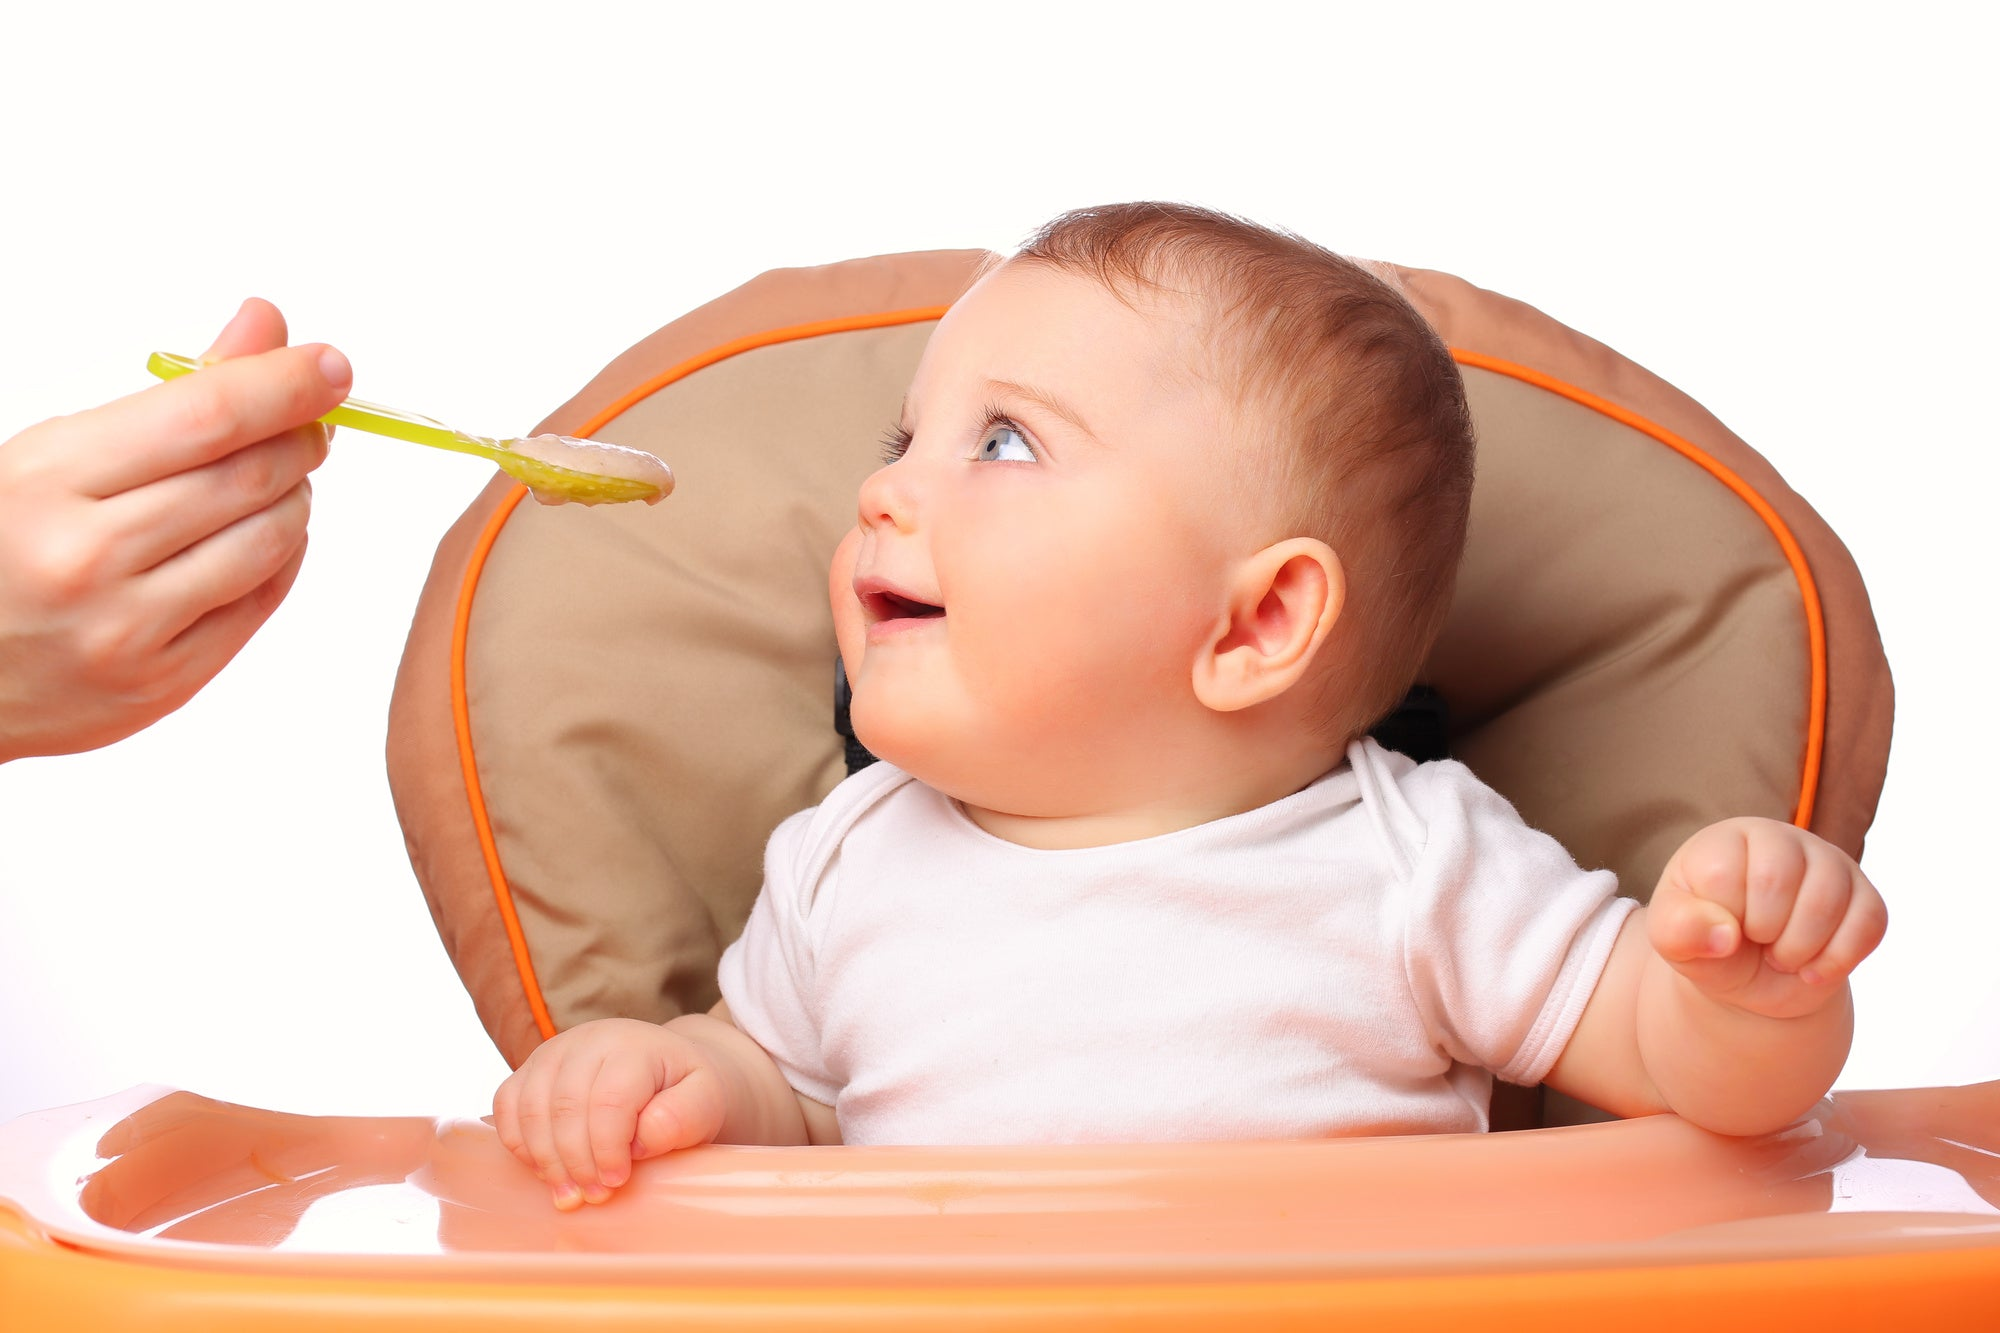 Feeding Your Baby: What to Do When Your Baby Refuses to Eat